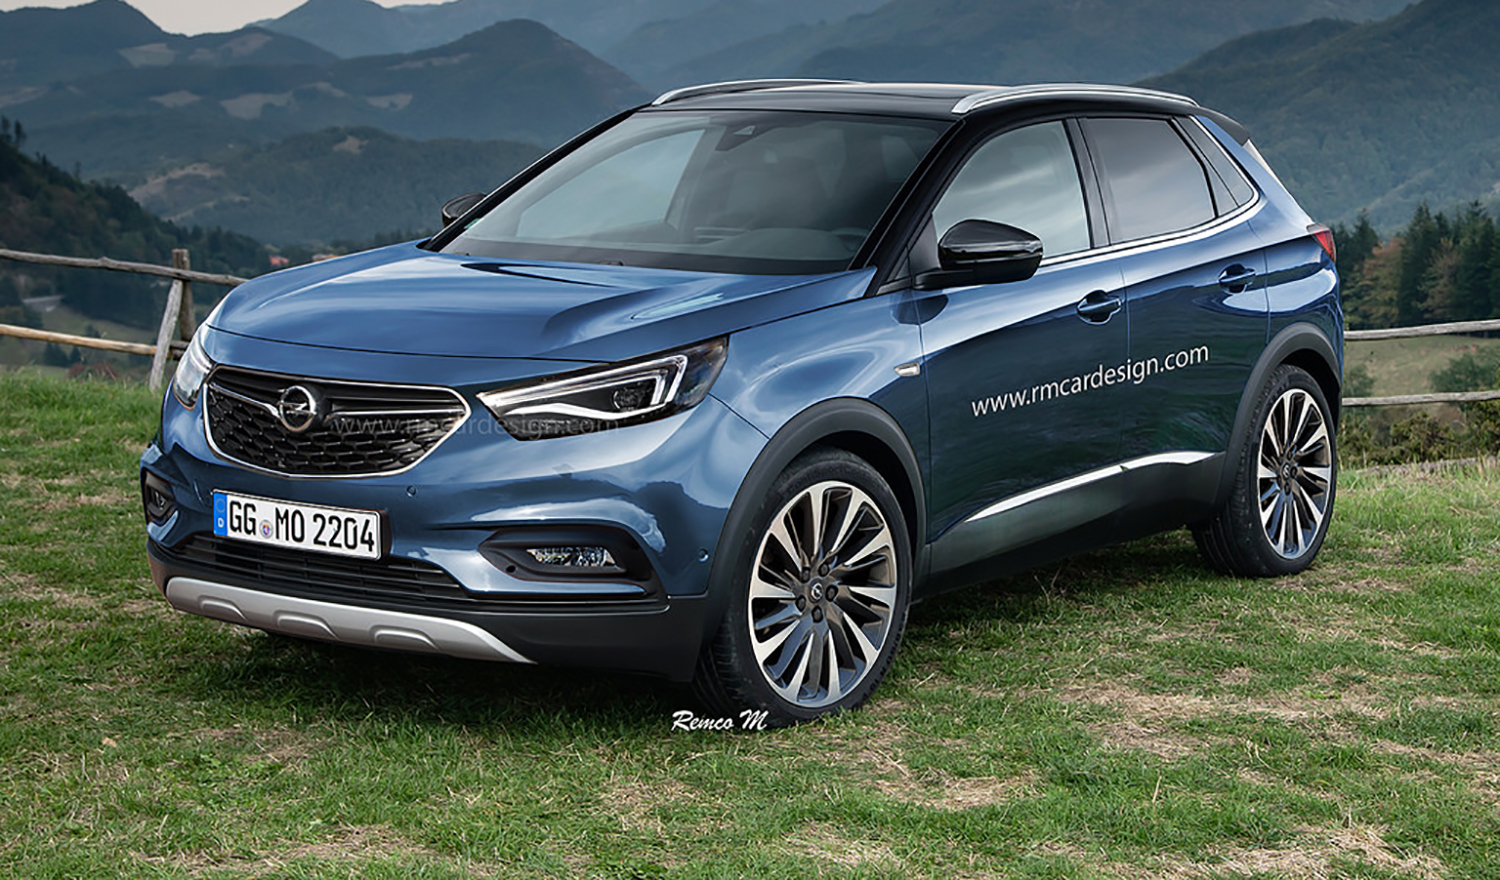 2017 opel grandland x rendered upcoming small suv. Black Bedroom Furniture Sets. Home Design Ideas